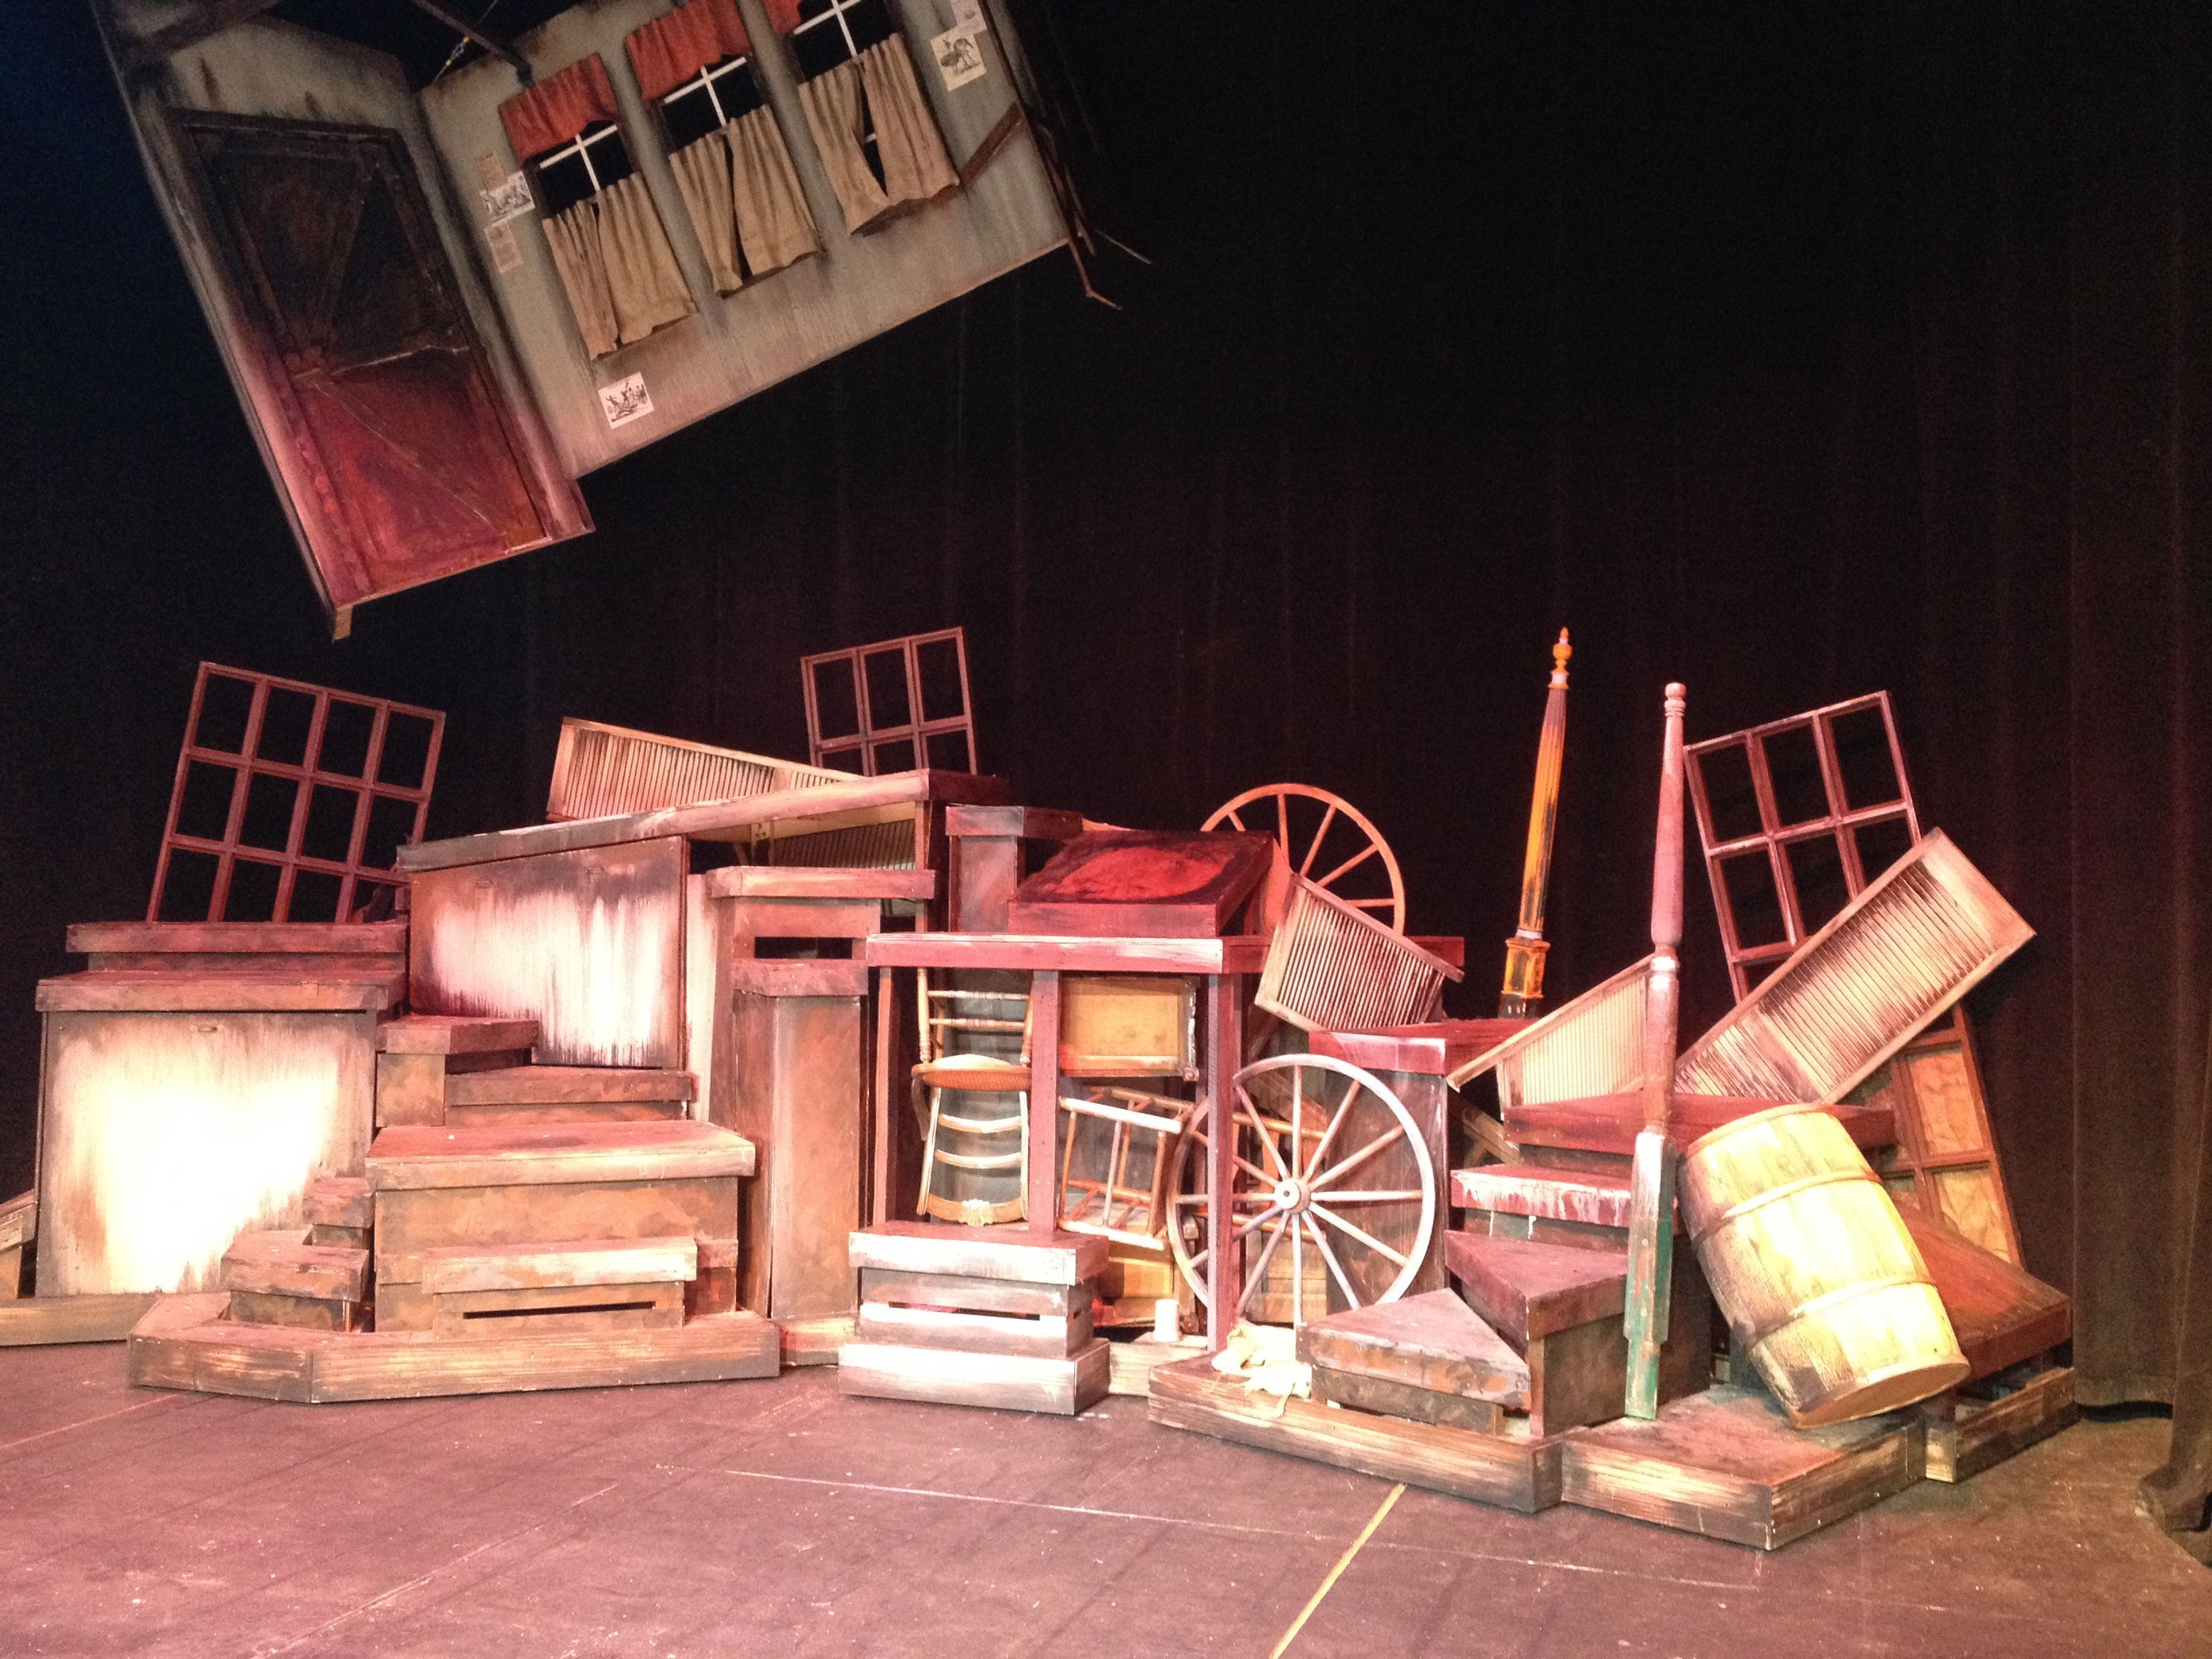 Remarkable Les Mis Barricade On Stage  Google Search    Les Mis  With Hot The Barricade In Les Miserables Designed By Tim Wisgerhof With Cute Paradise Park Garden Centre Also Garden Party Invitation Ideas In Addition Garden Street Lamp And Garden Waste Removal As Well As Gardens In Cornwall Additionally Jewellery Shops In Hatton Garden From Pinterestcom With   Hot Les Mis Barricade On Stage  Google Search    Les Mis  With Cute The Barricade In Les Miserables Designed By Tim Wisgerhof And Remarkable Paradise Park Garden Centre Also Garden Party Invitation Ideas In Addition Garden Street Lamp From Pinterestcom